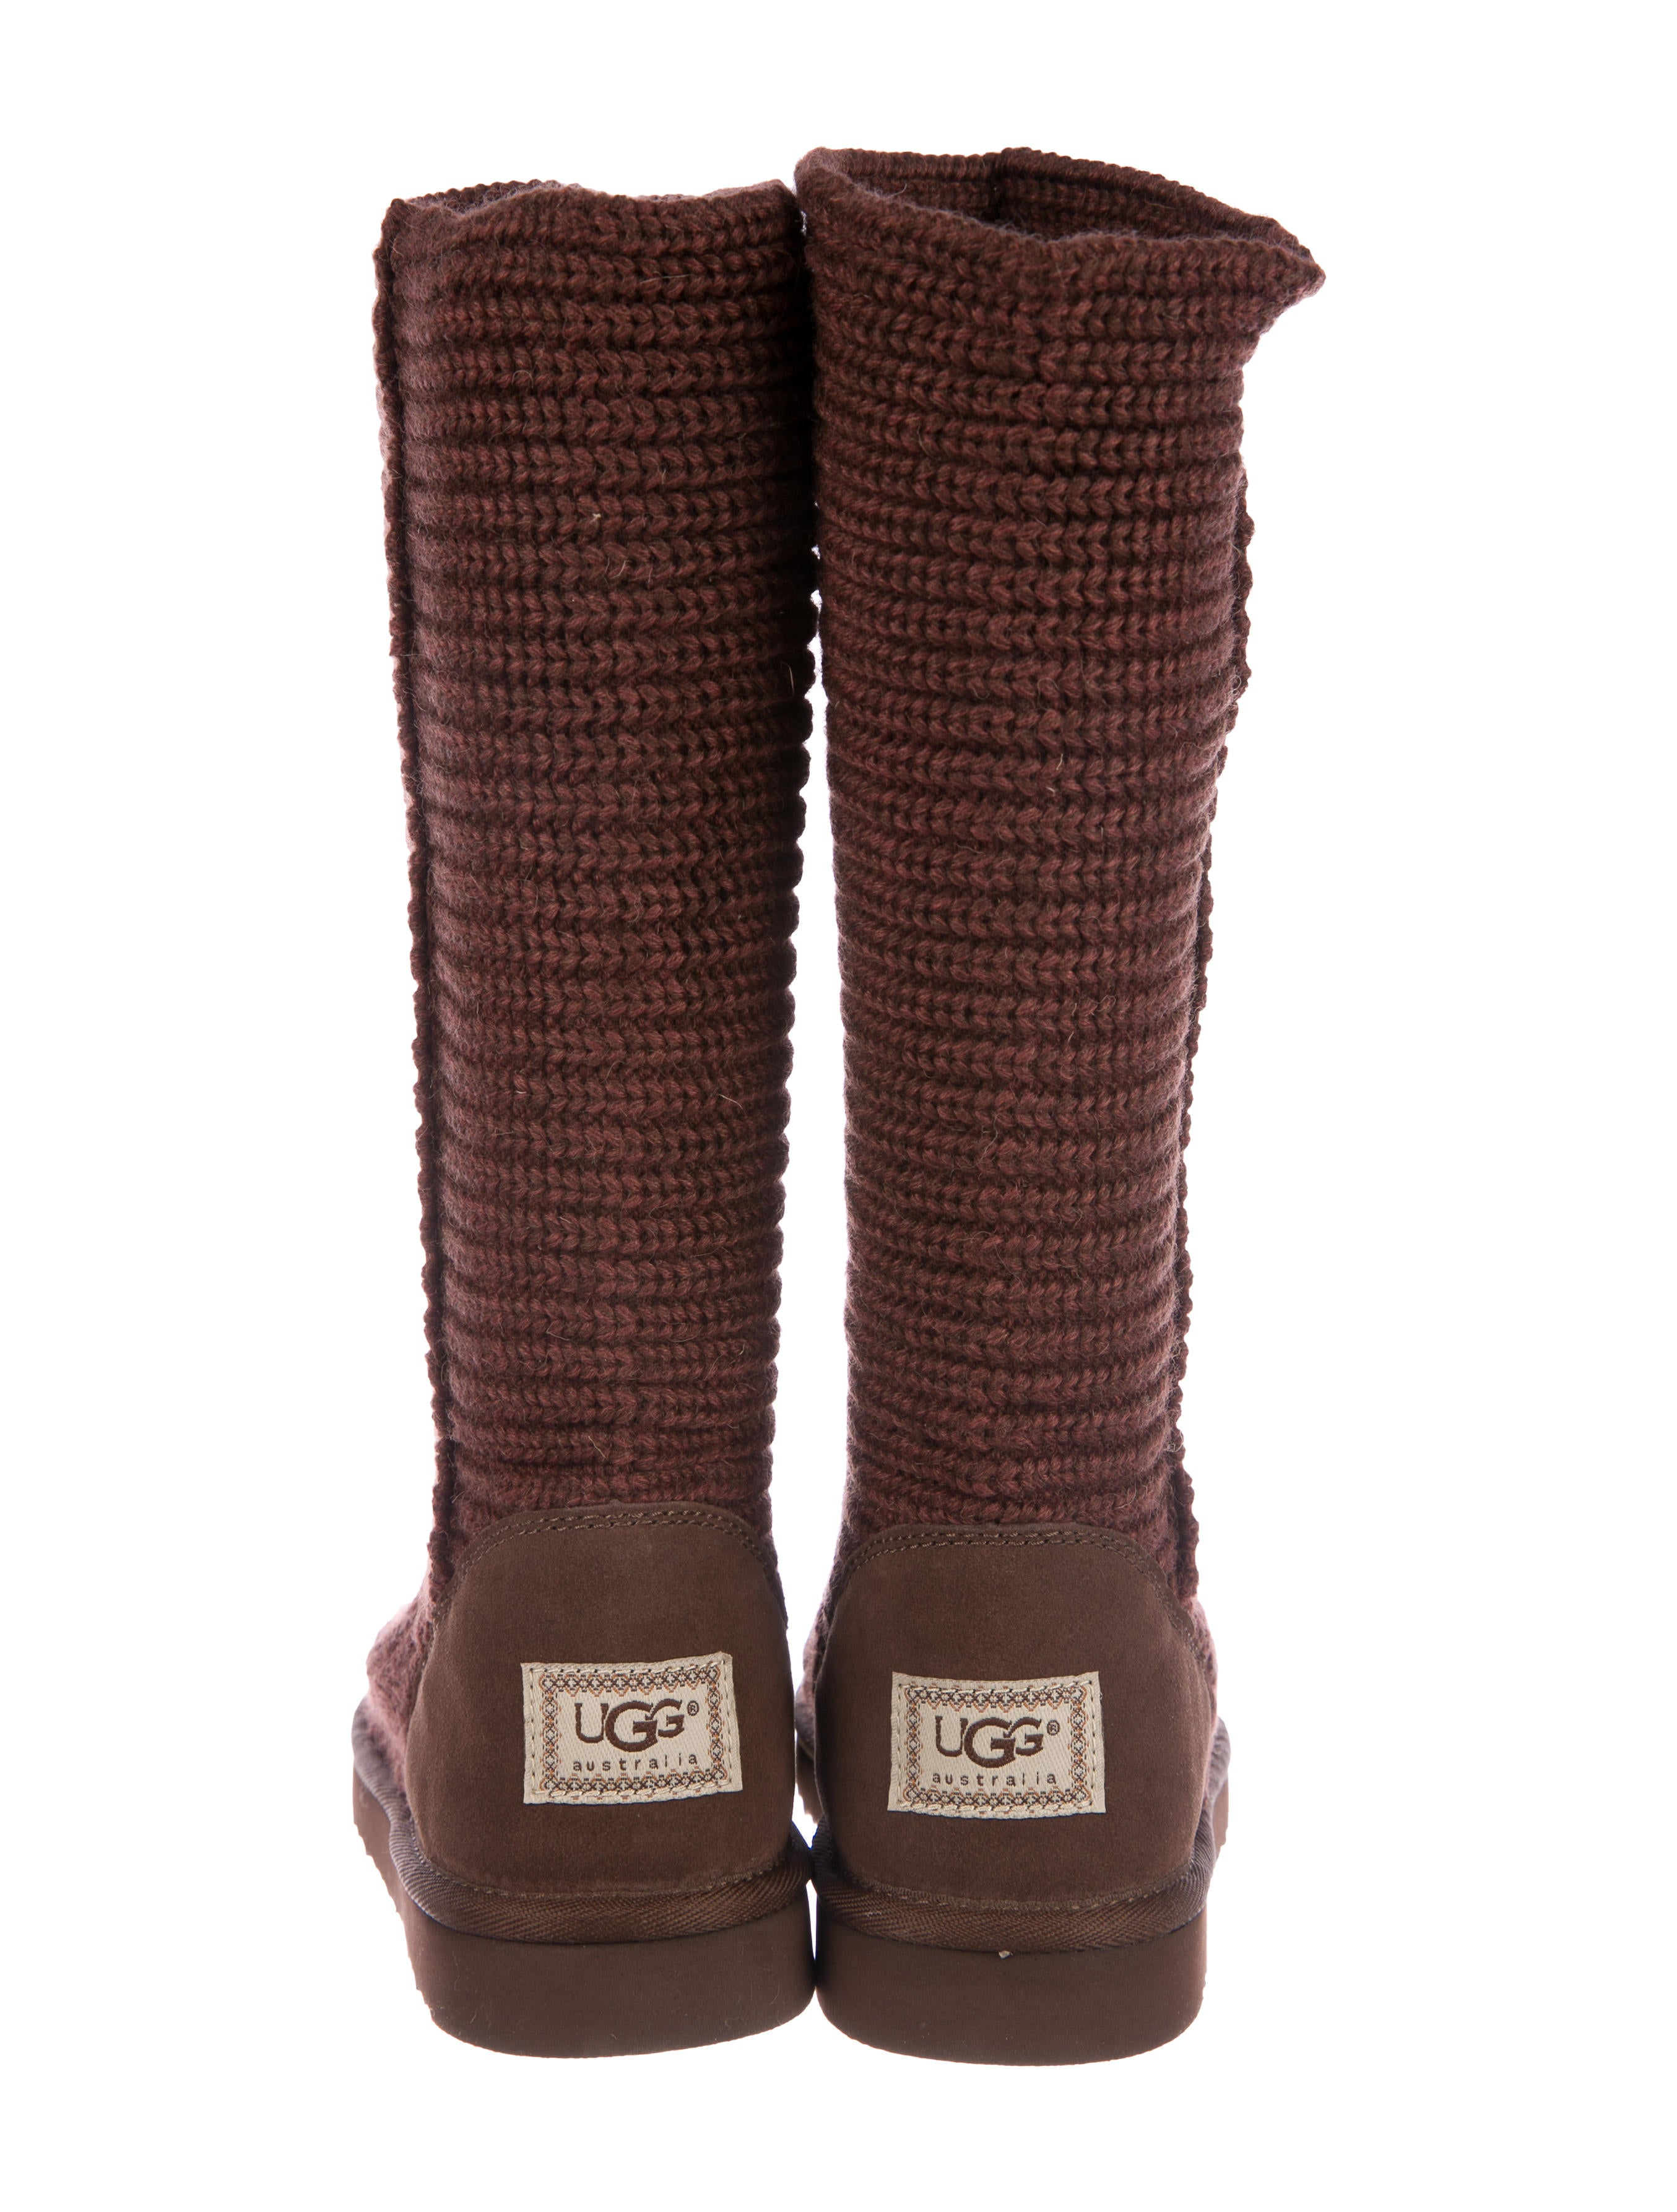 UGG Australia Knit Shearling-Trimmed Boots w/ Tags free shipping low shipping 5EIVgNiU